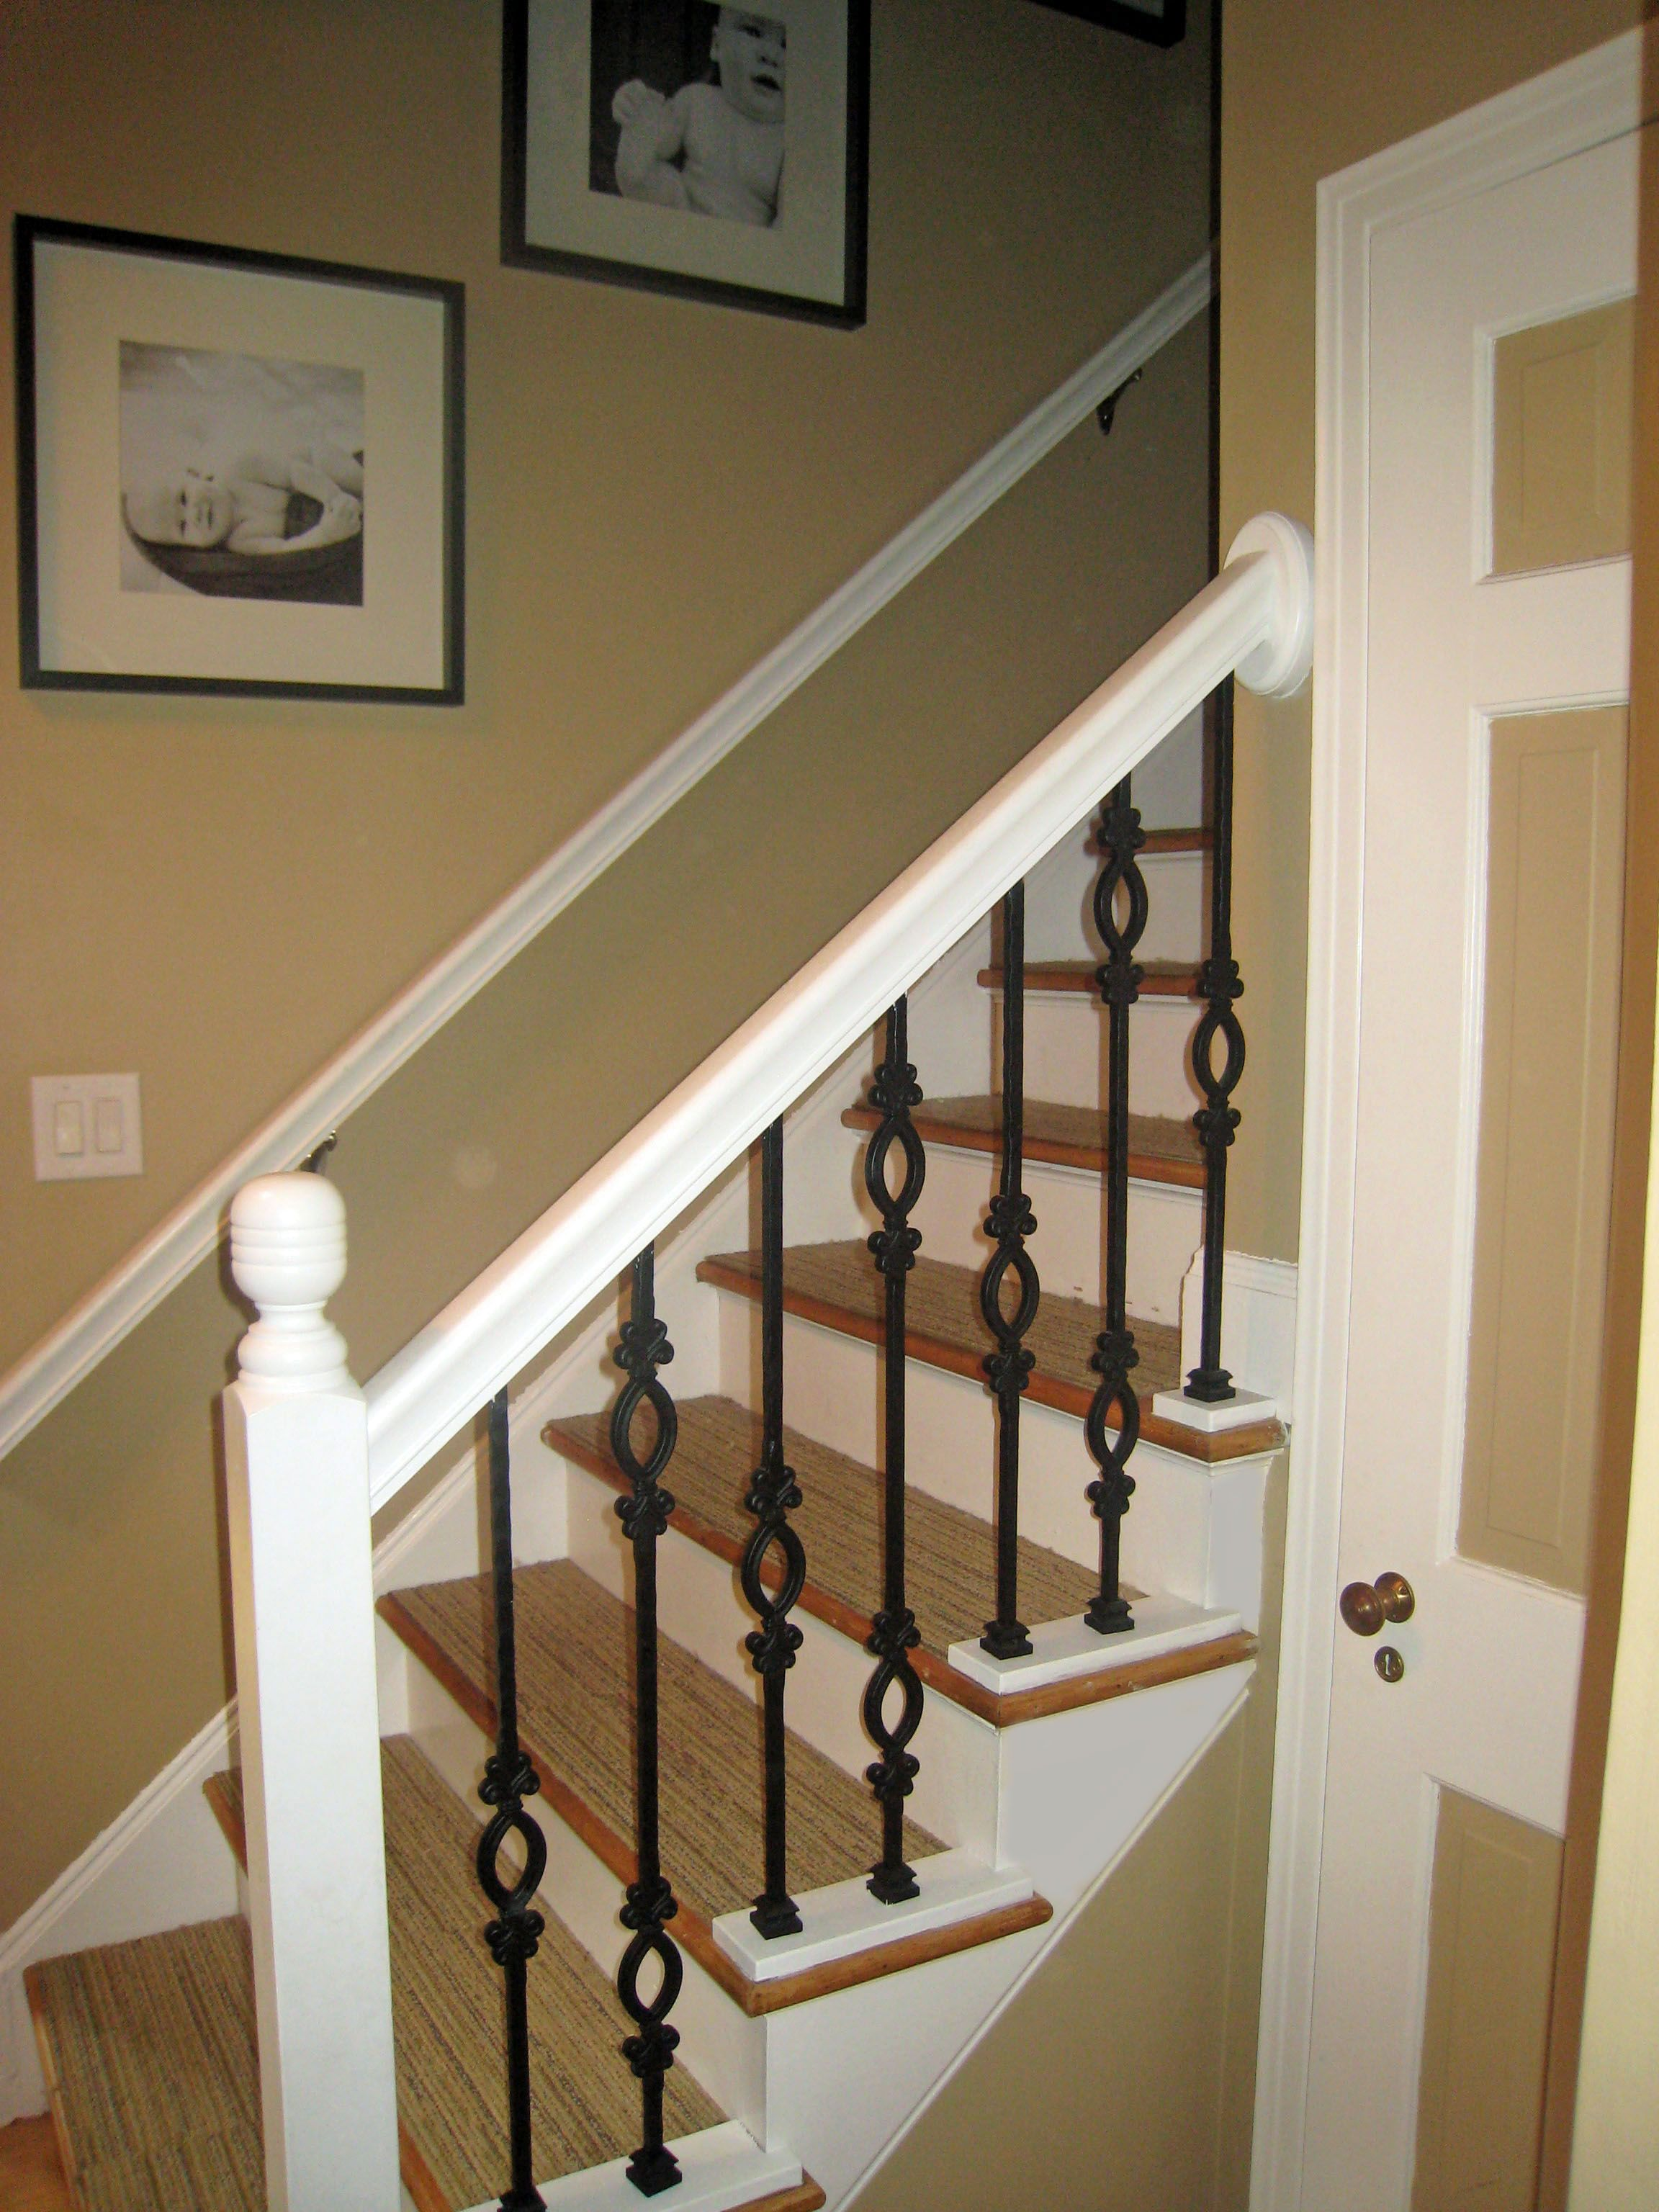 White Railing With Iron Spindles Wrought Iron Banister Banister   White Banister With Iron Spindles   Foyer   Remodel   Basement   Stair Heavy   Madison